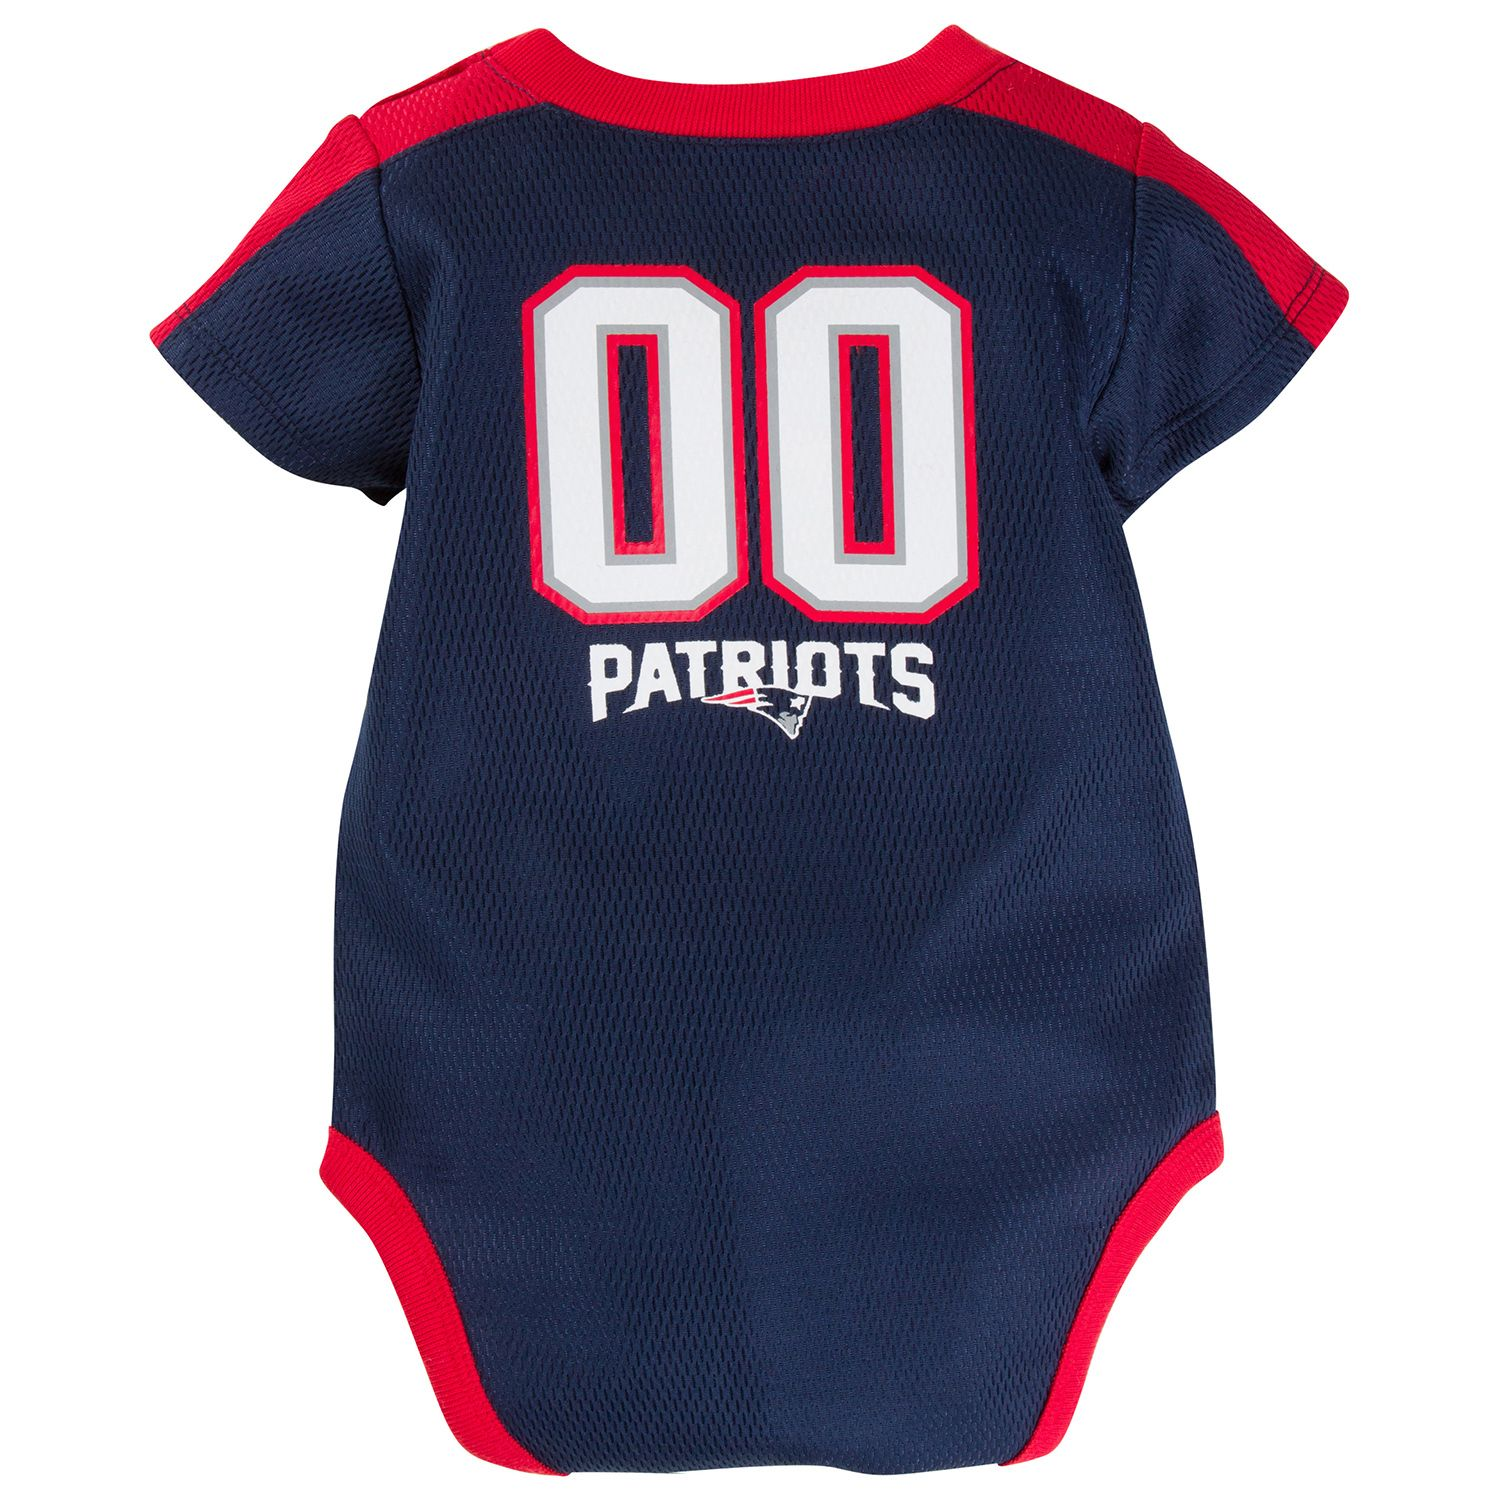 New England Patriots Baby Clothing